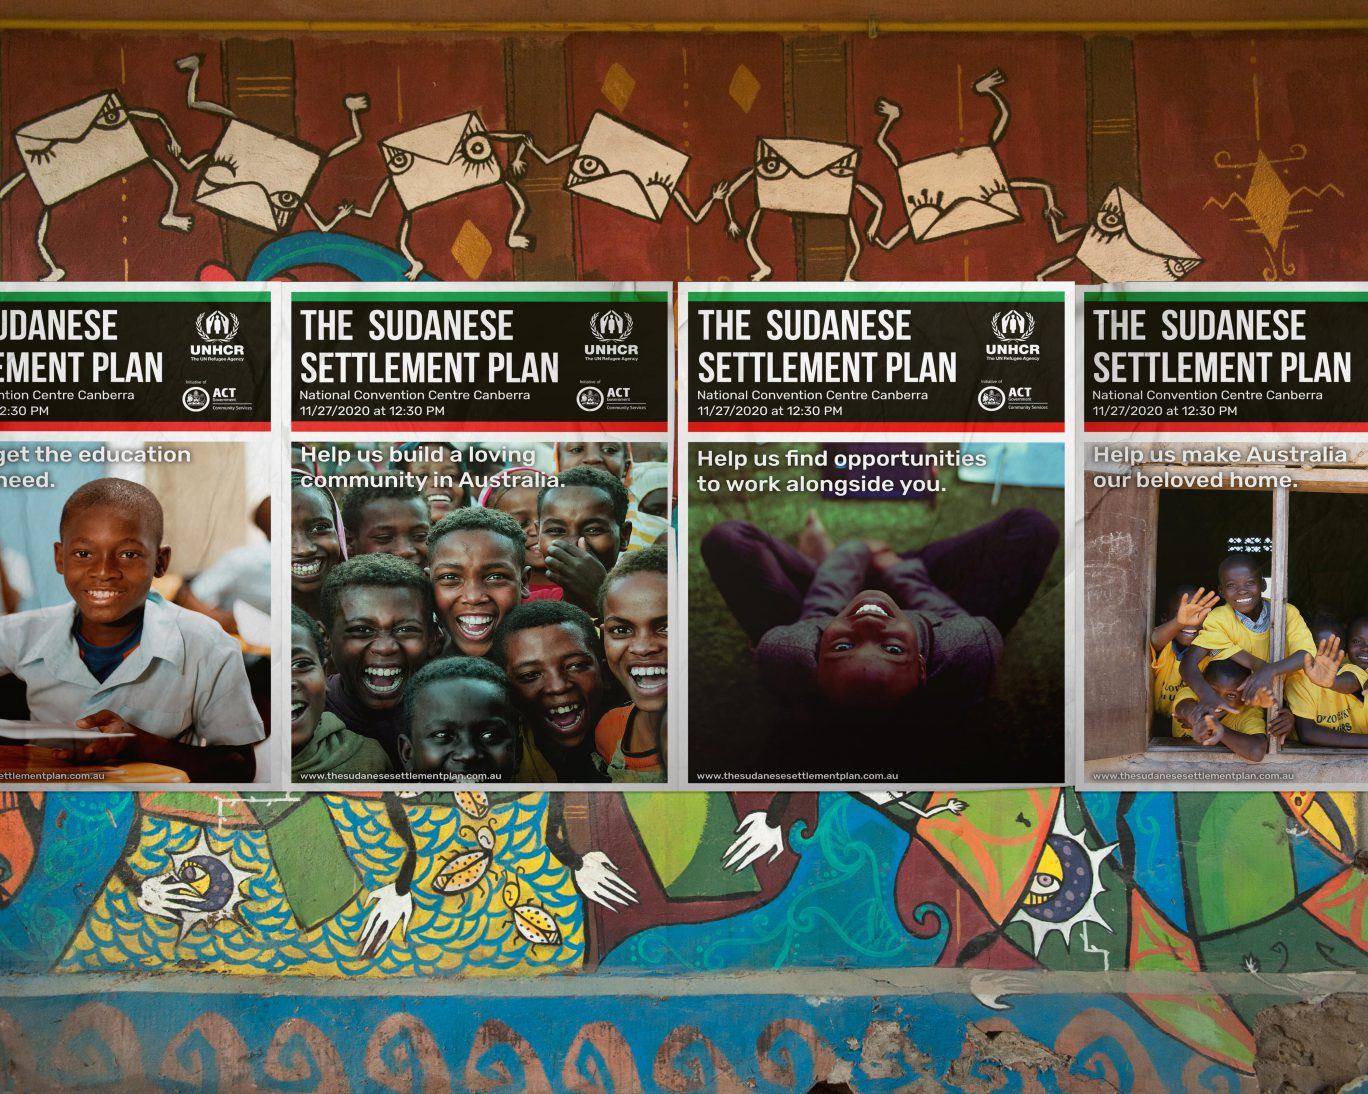 The Sudanese Settlement Plan